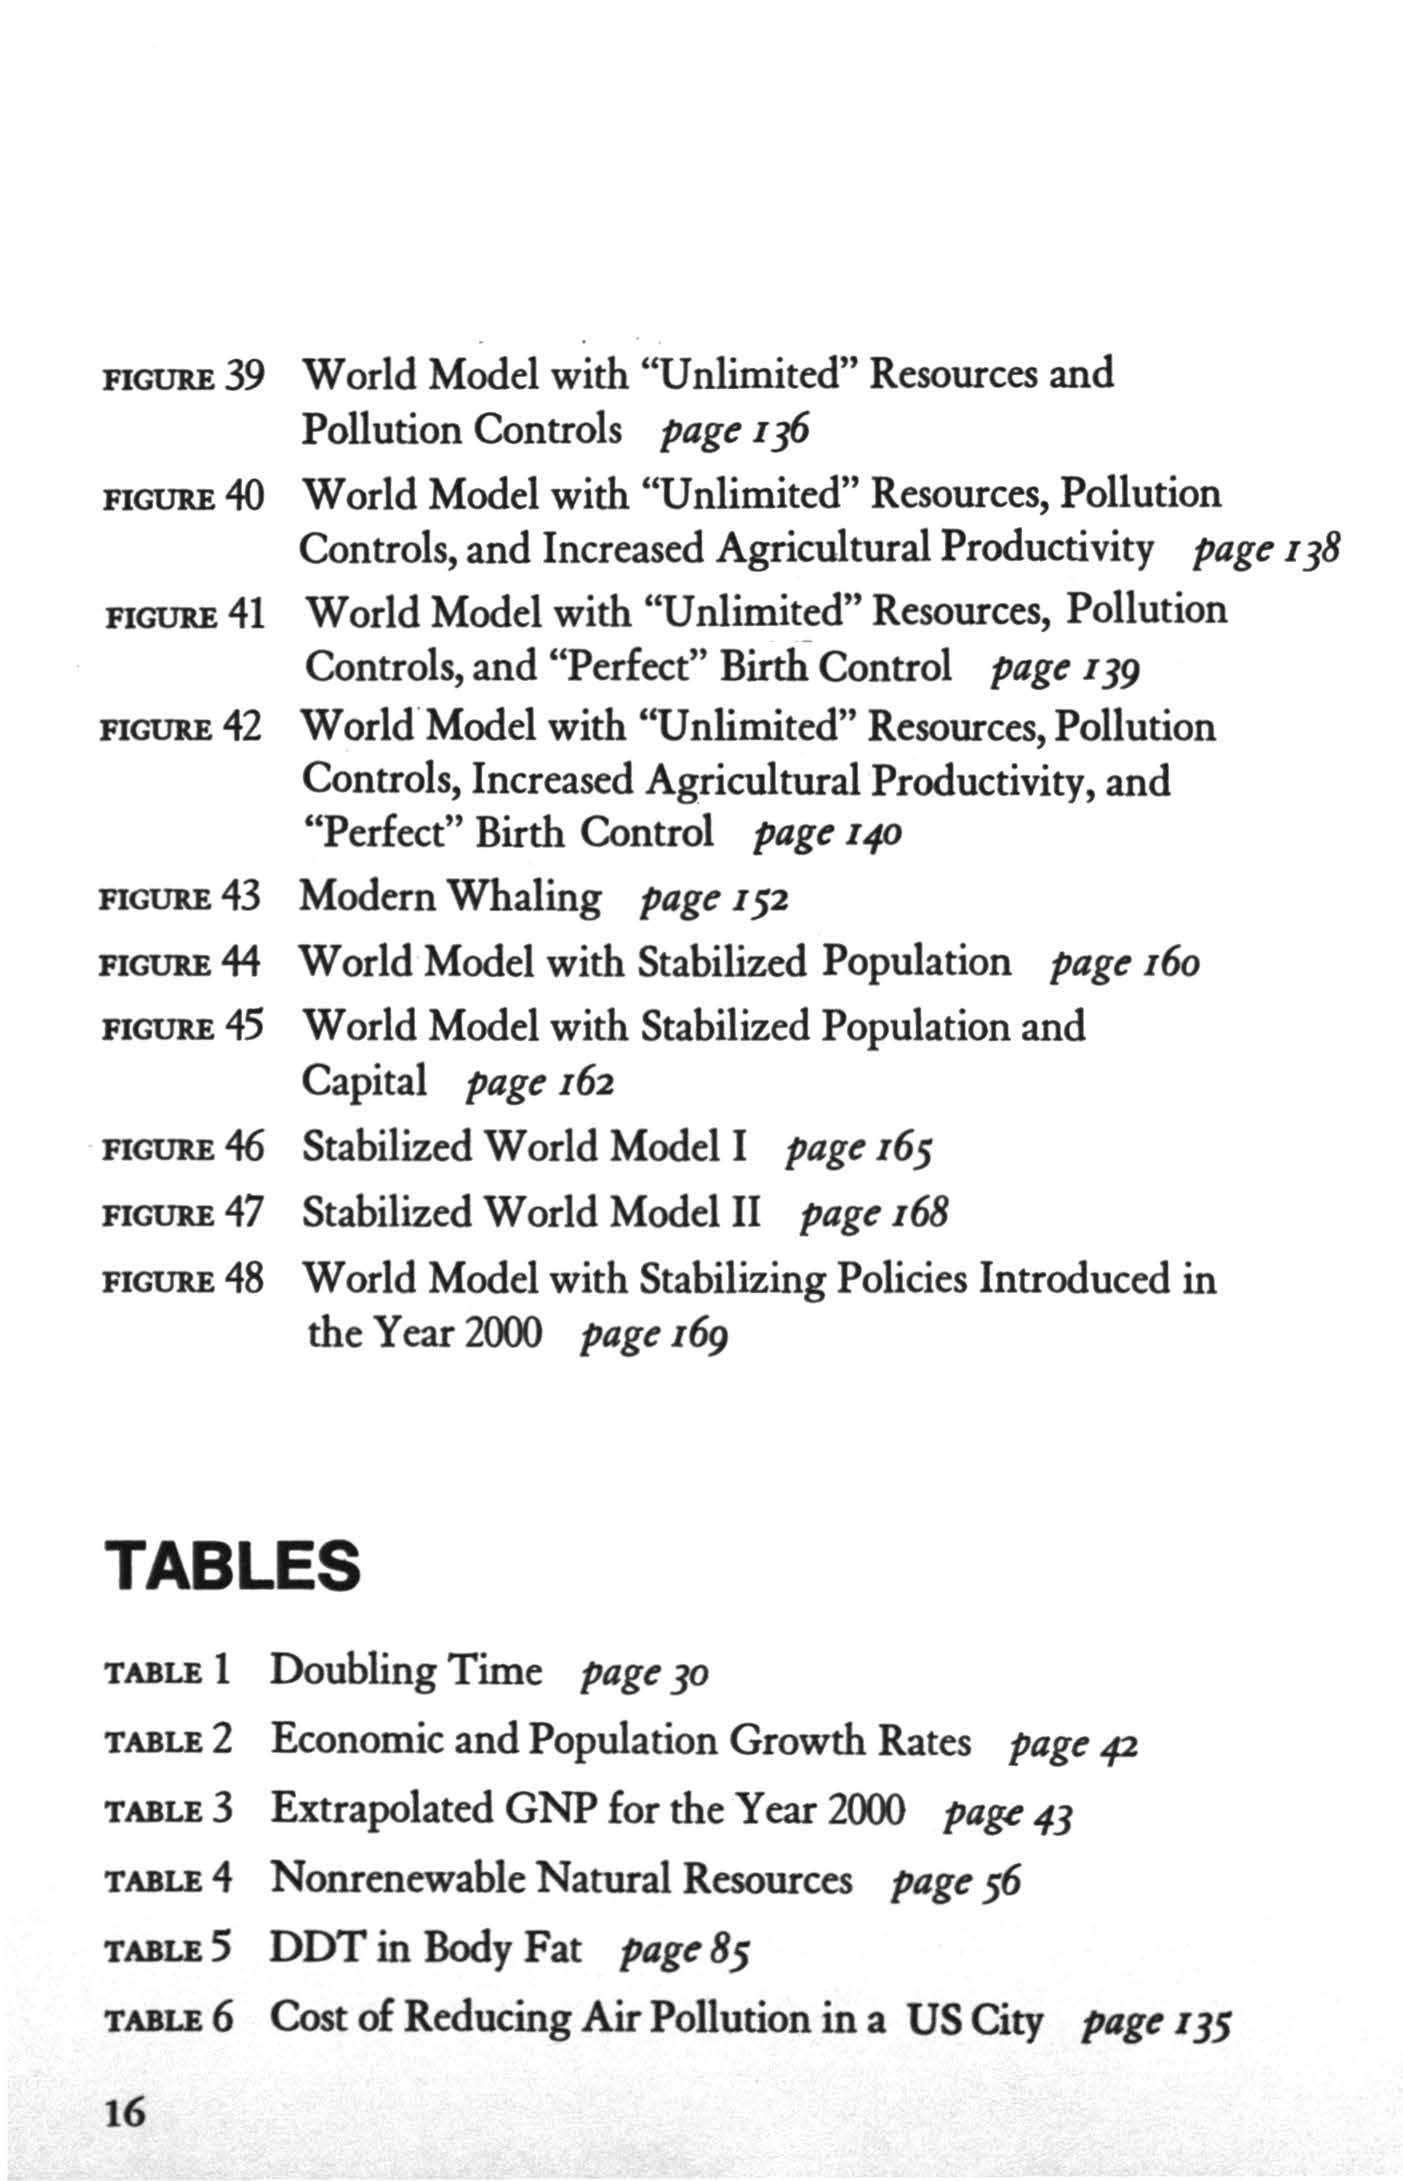 "FGUllE 39 World Model with ""Unlimited"" Resources and Pollution Controls page 1 ]6 FGUllE 40 World Model with ""Unlimited"" Resources, Pollution Controls, and ncreased Agricultural Productivity page 138"